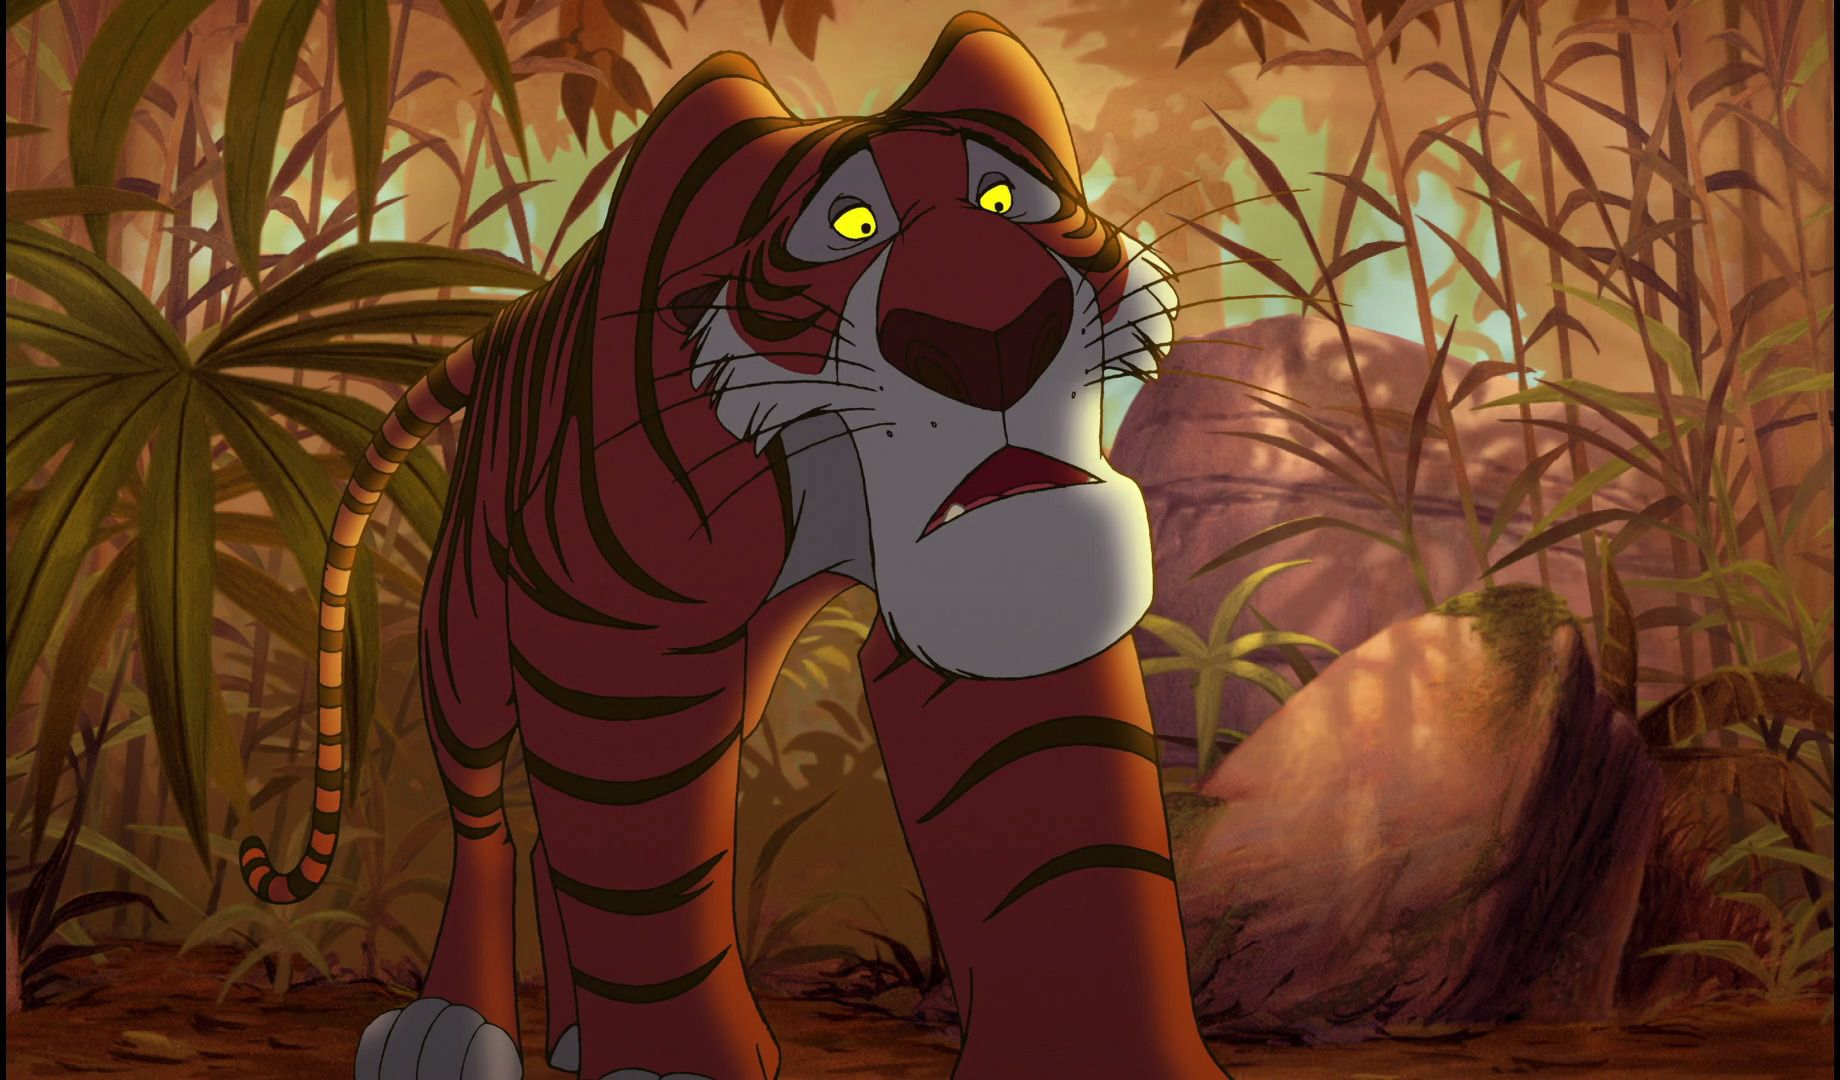 the jungle book 2 shere khan fight favorites t